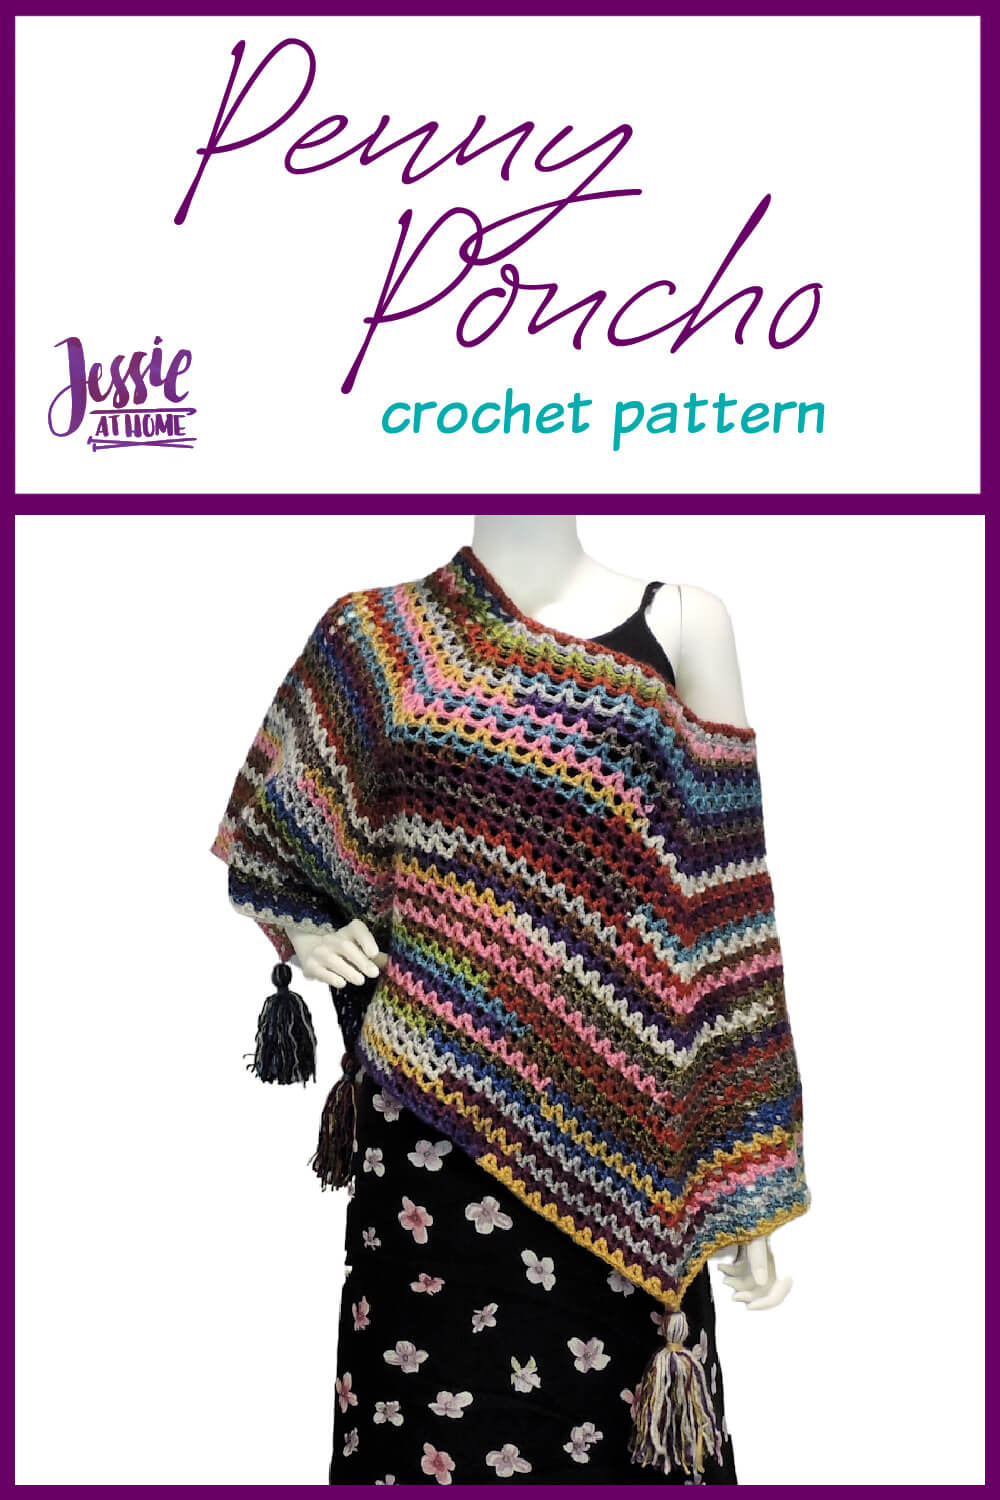 Penny Poncho crochet pattern by Jessie At Home - Pin 1